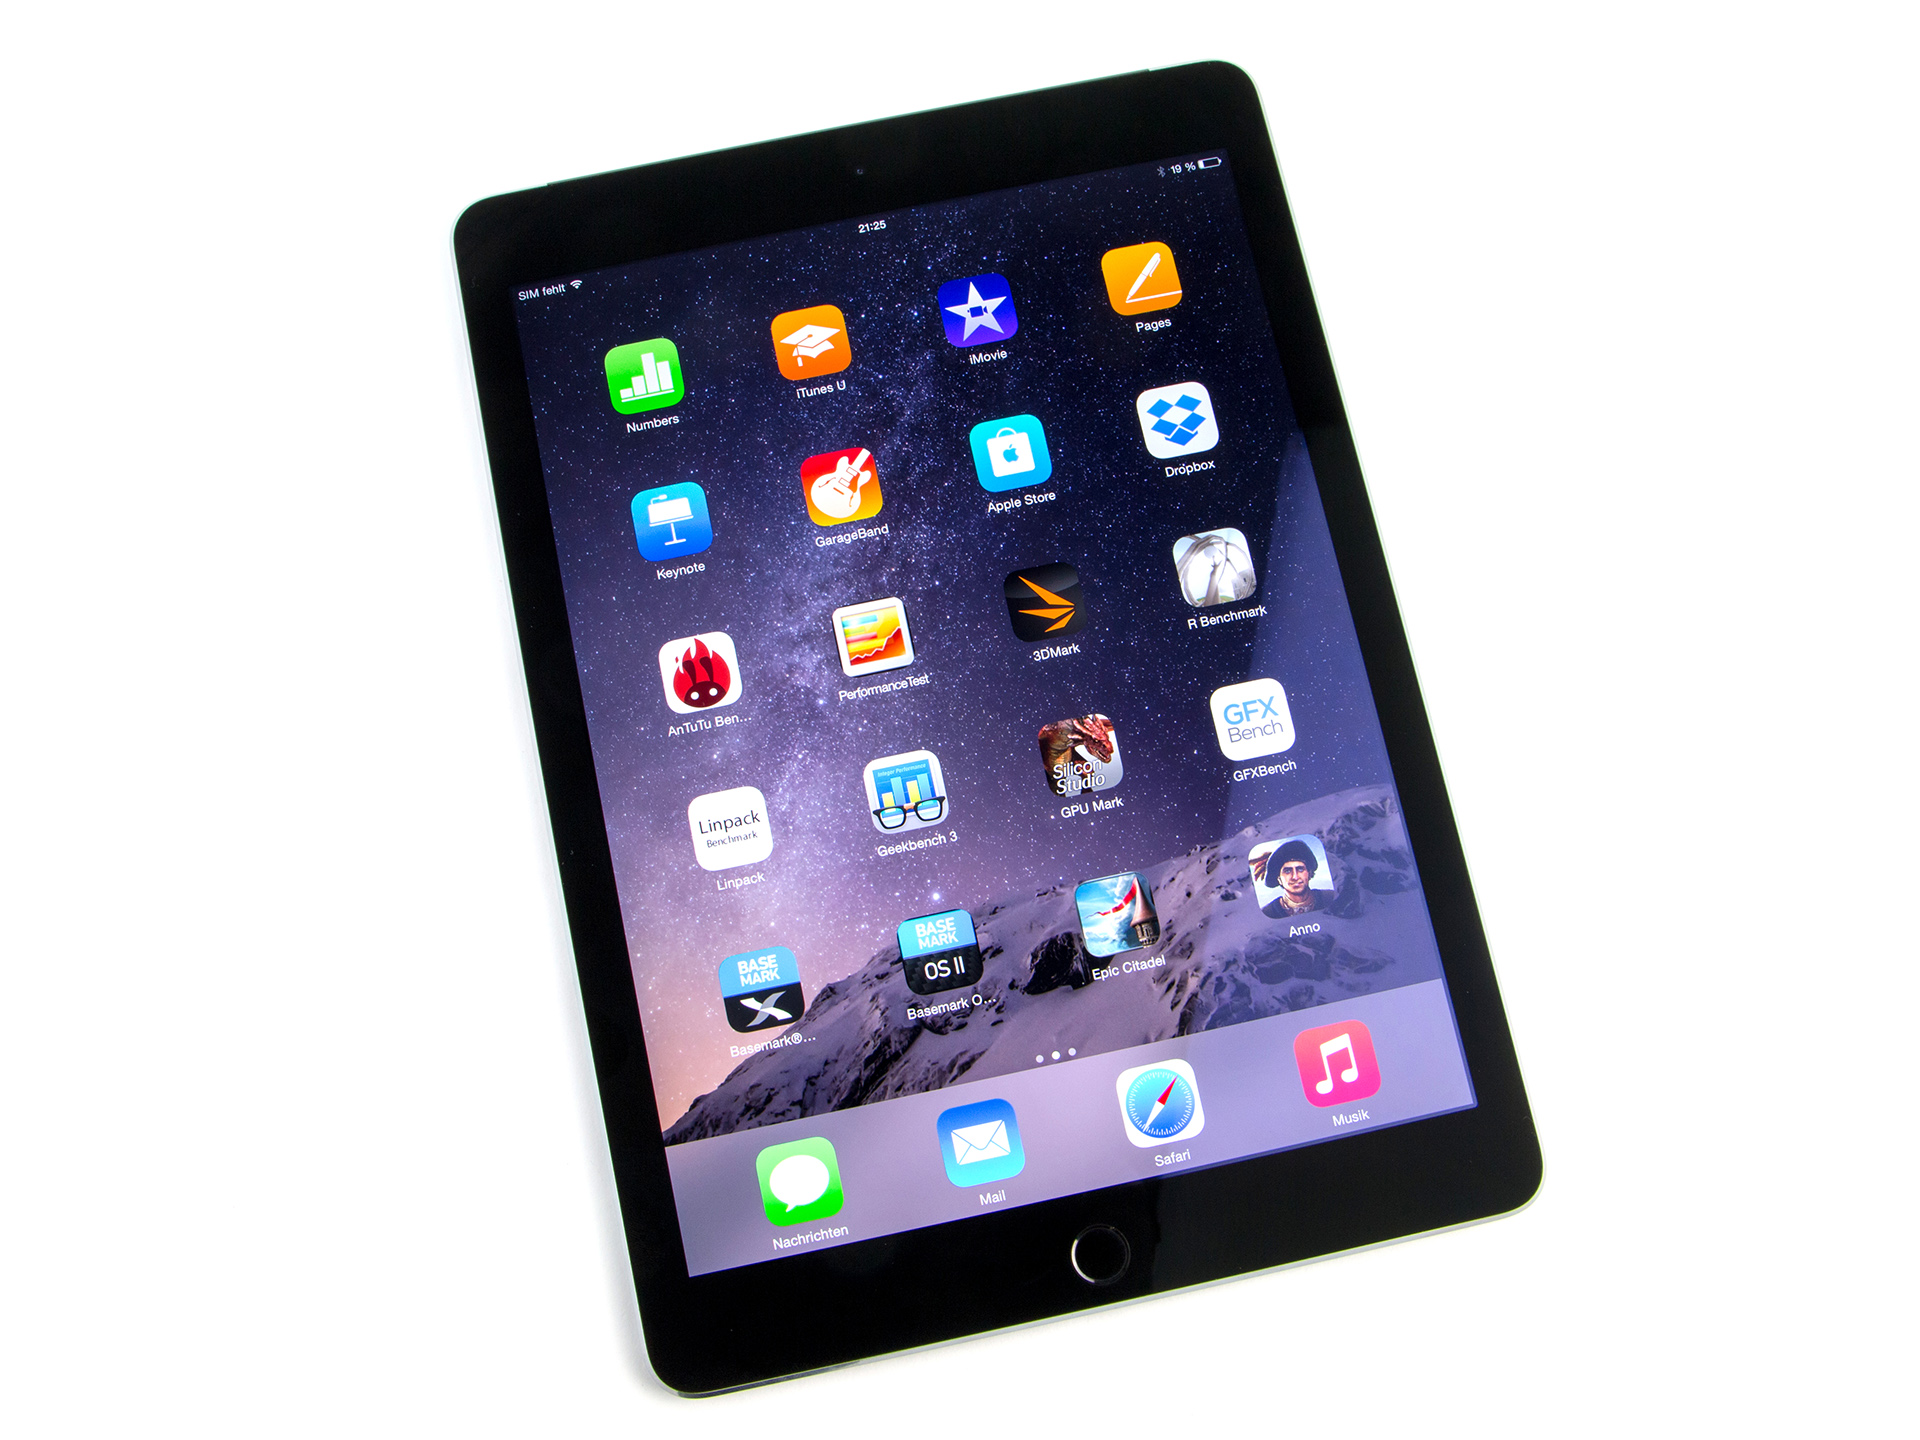 Ipad: Apple IPad Air 2 (A1567 / 128 GB / LTE) Tablet Review